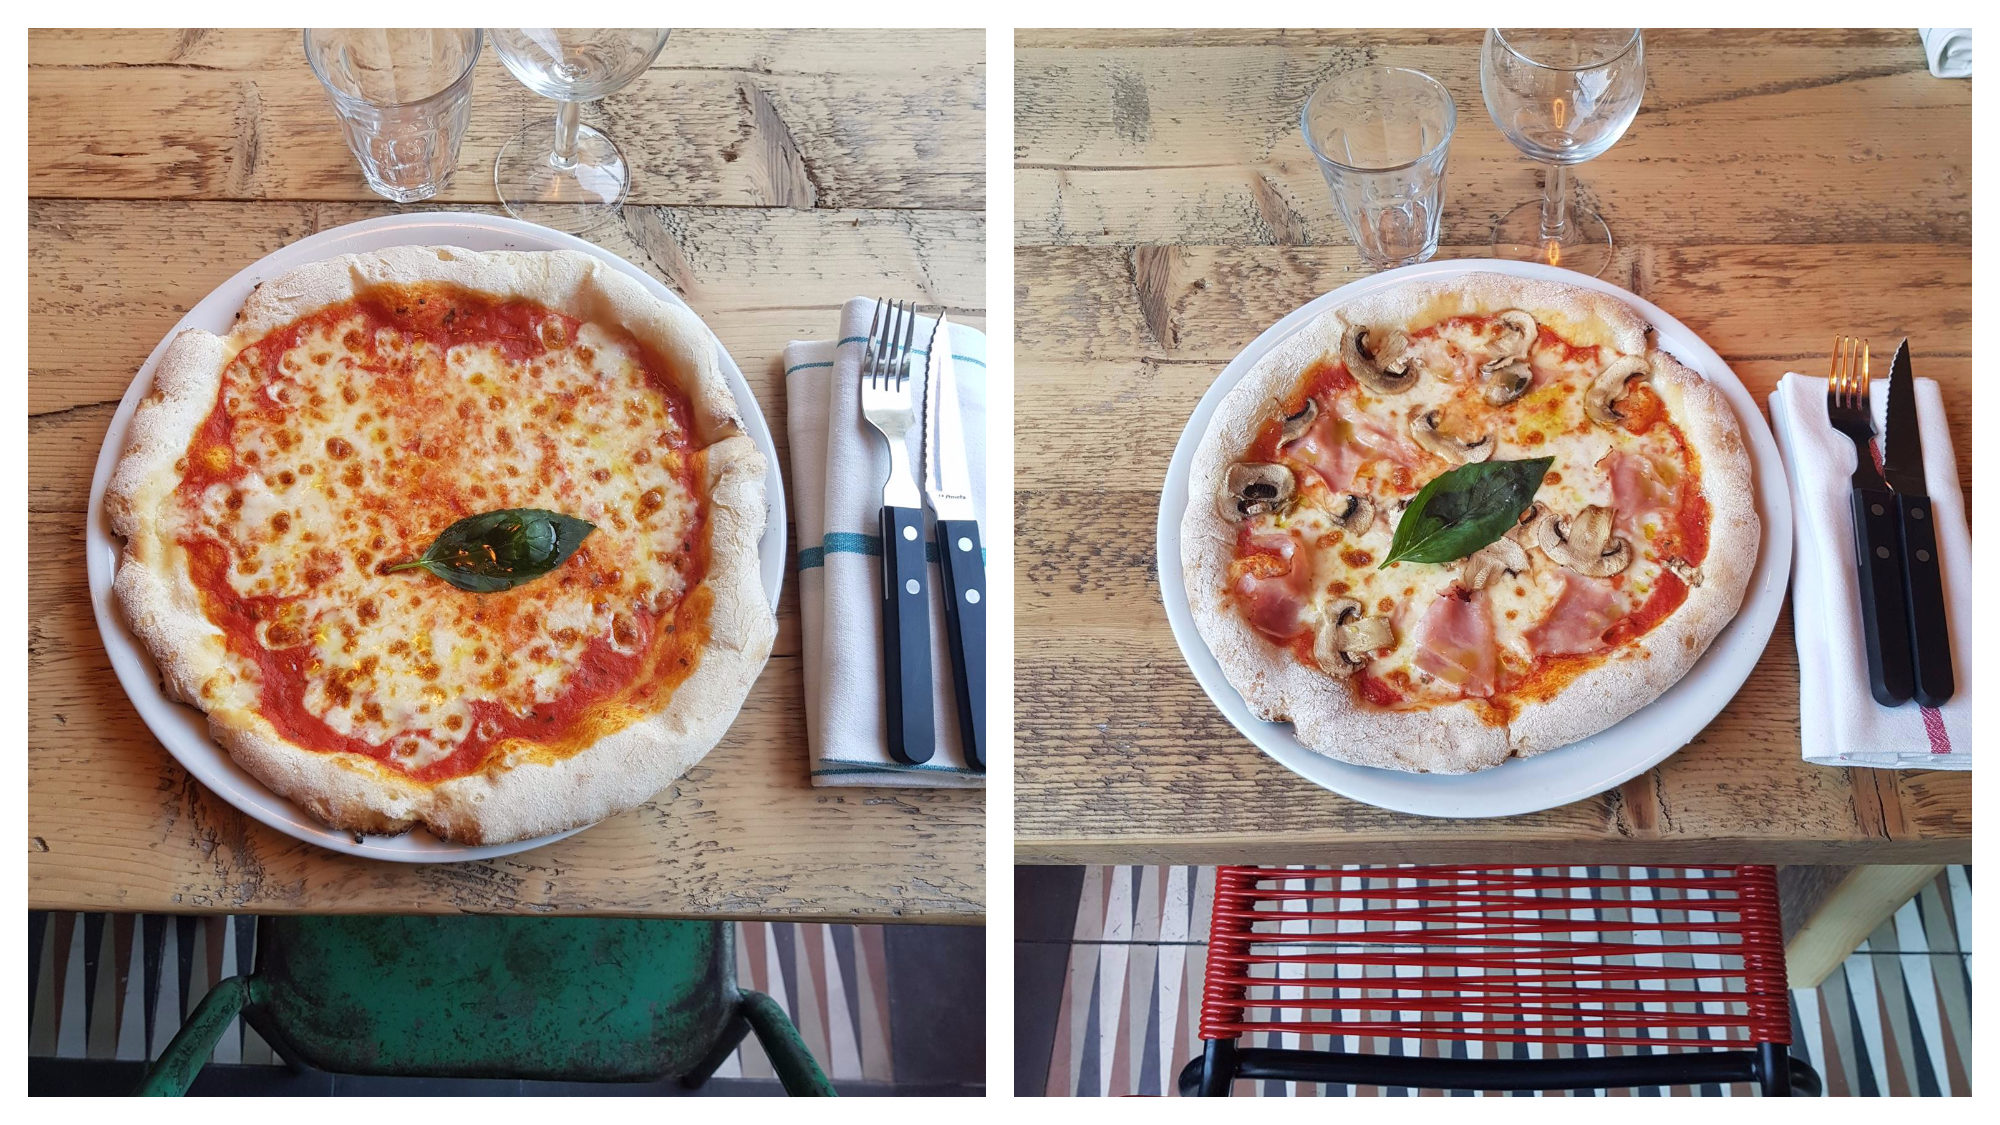 Two gluten-free pizzas, one a margherita (left) and one a ham and mushroom (right), set on a wooden table at Little Nonna.